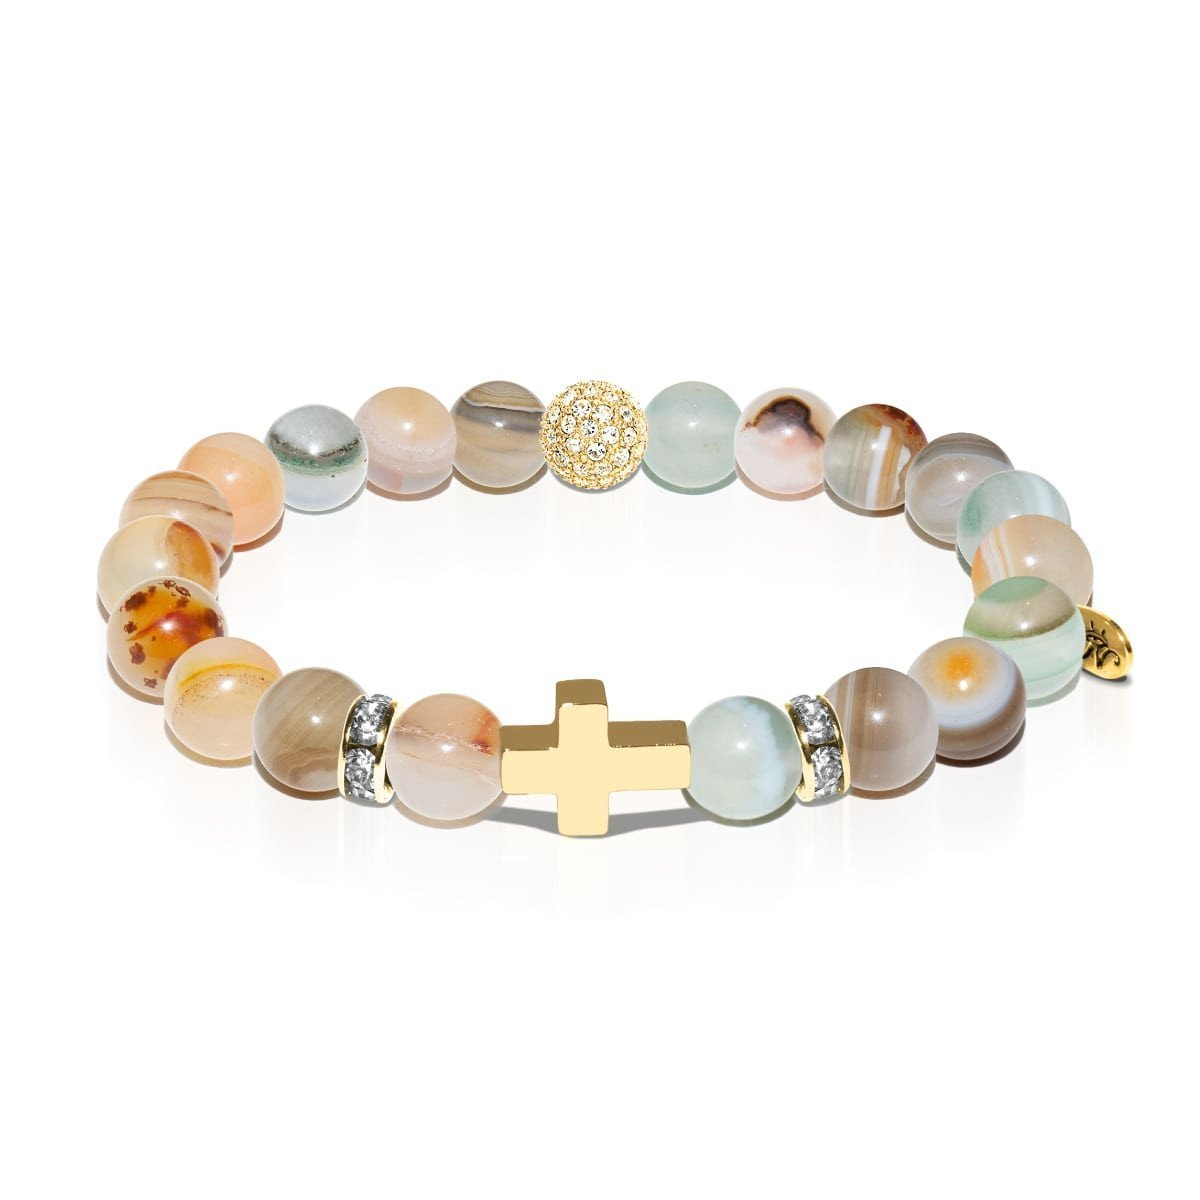 St. Elizabeth of Hungary | Gold Cross | Brown Striped Agate Bracelet